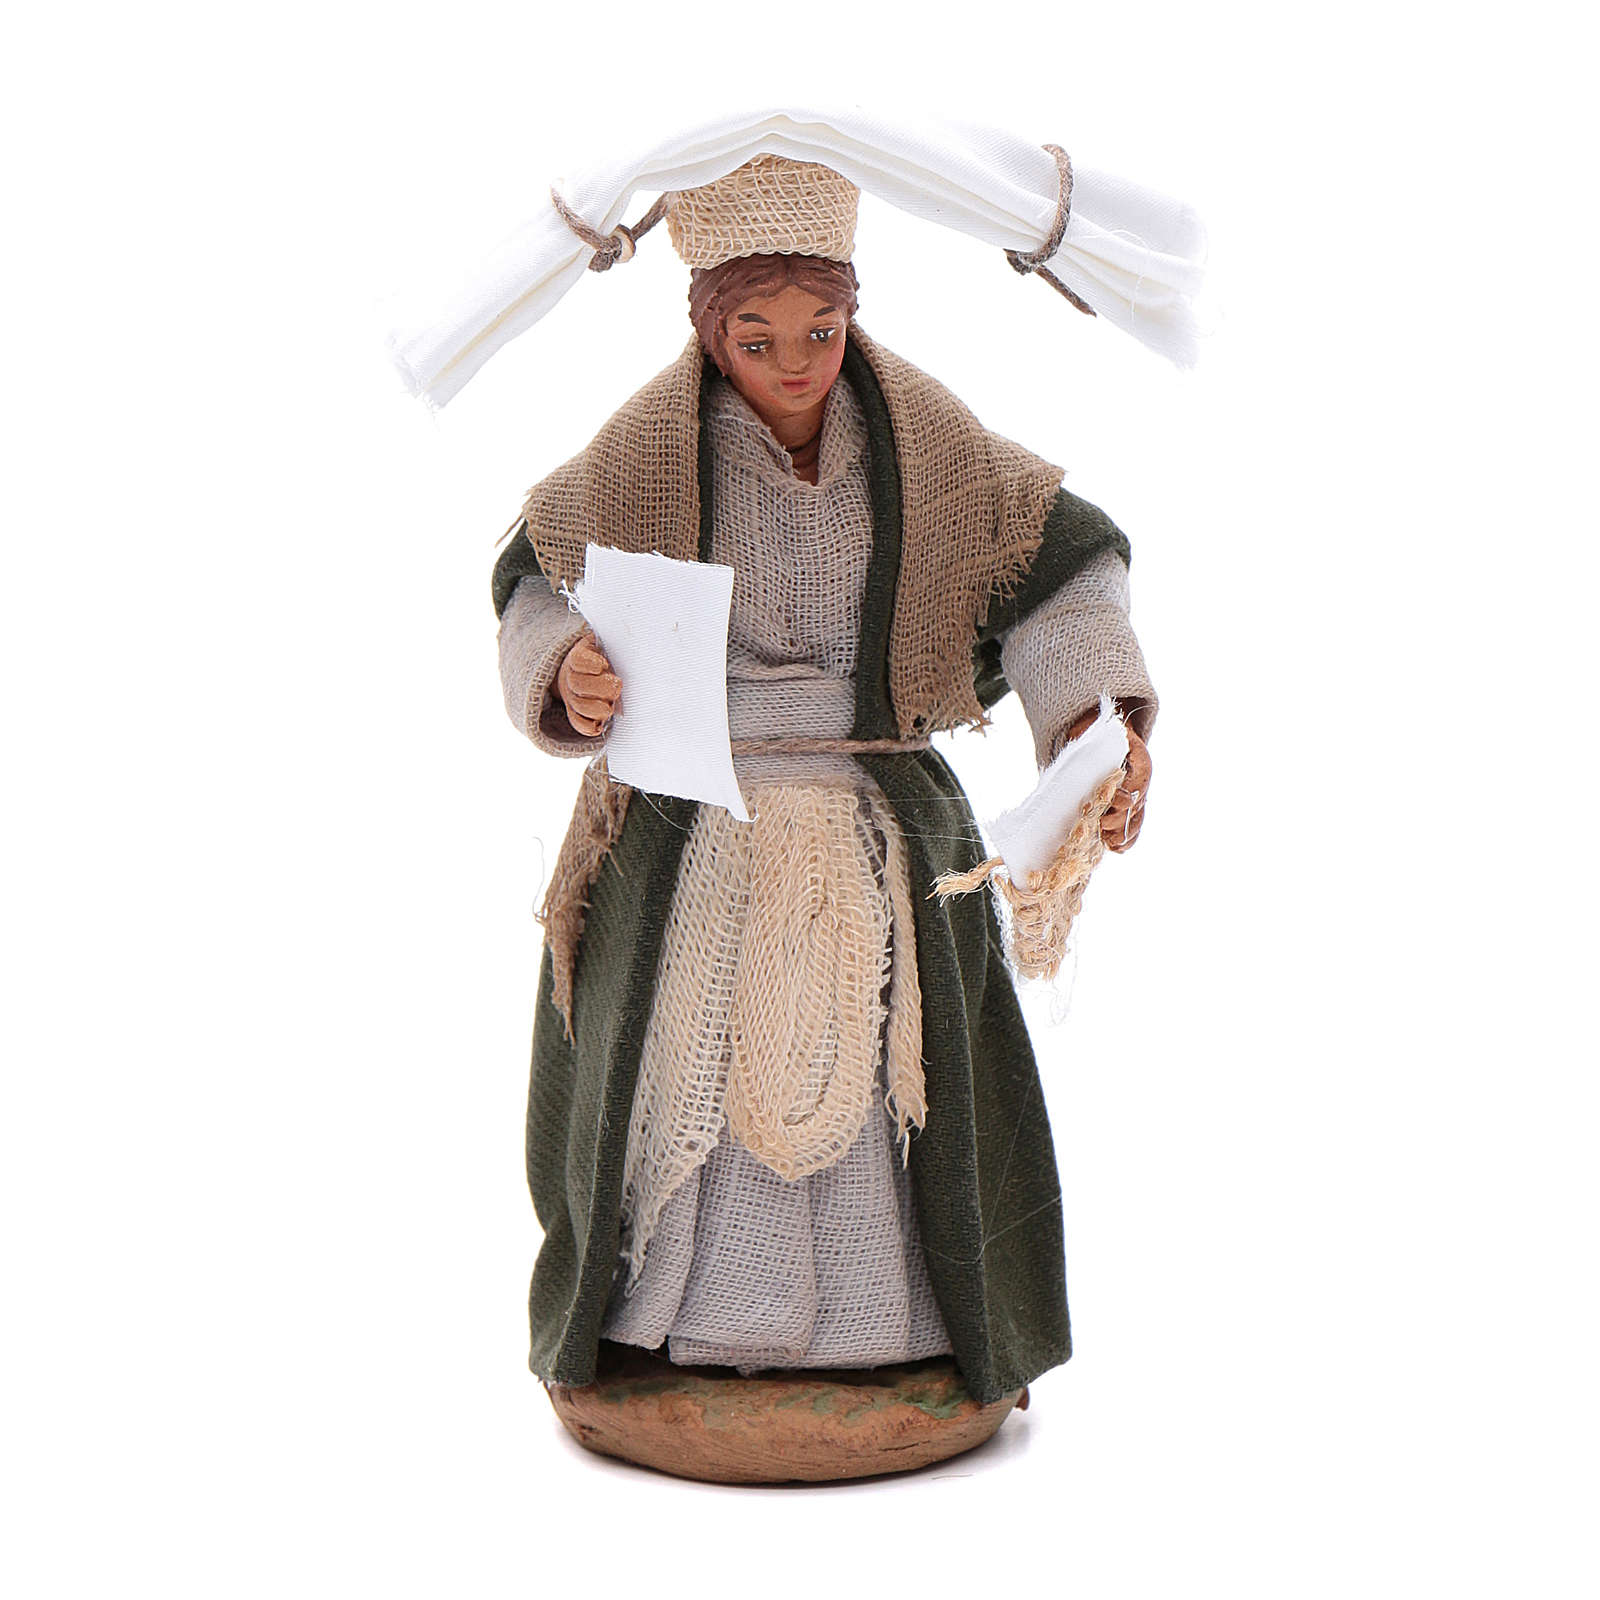 Woman with handkerchiefs, Neapolitan nativity figurine 10cm 4